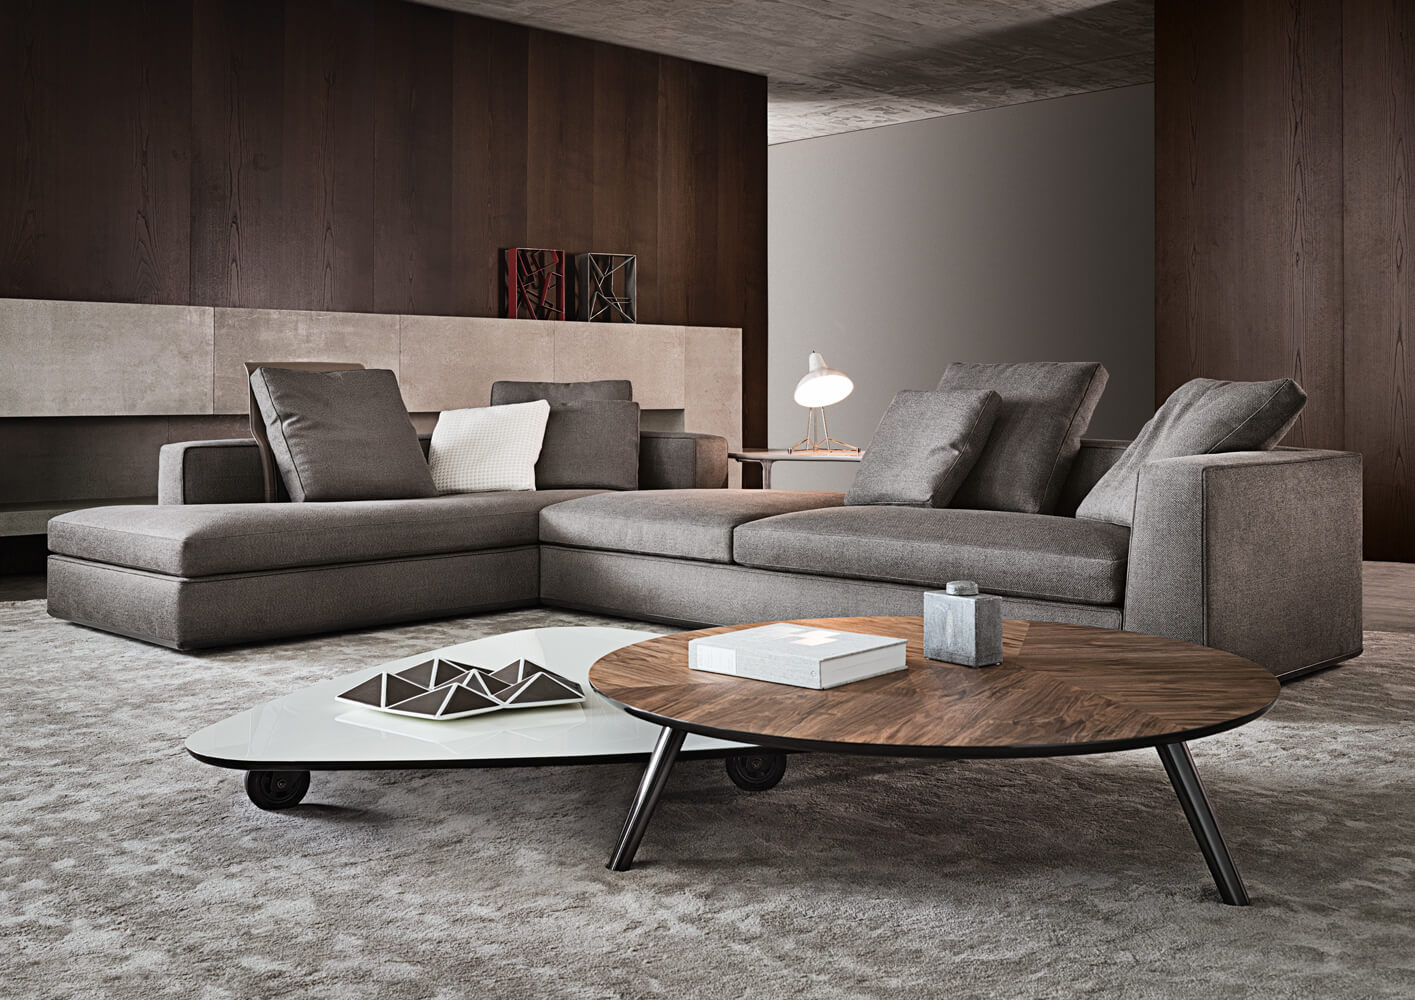 Grau Sofa 21+ Stylish And Unique Sofa Designs For A Modern Home